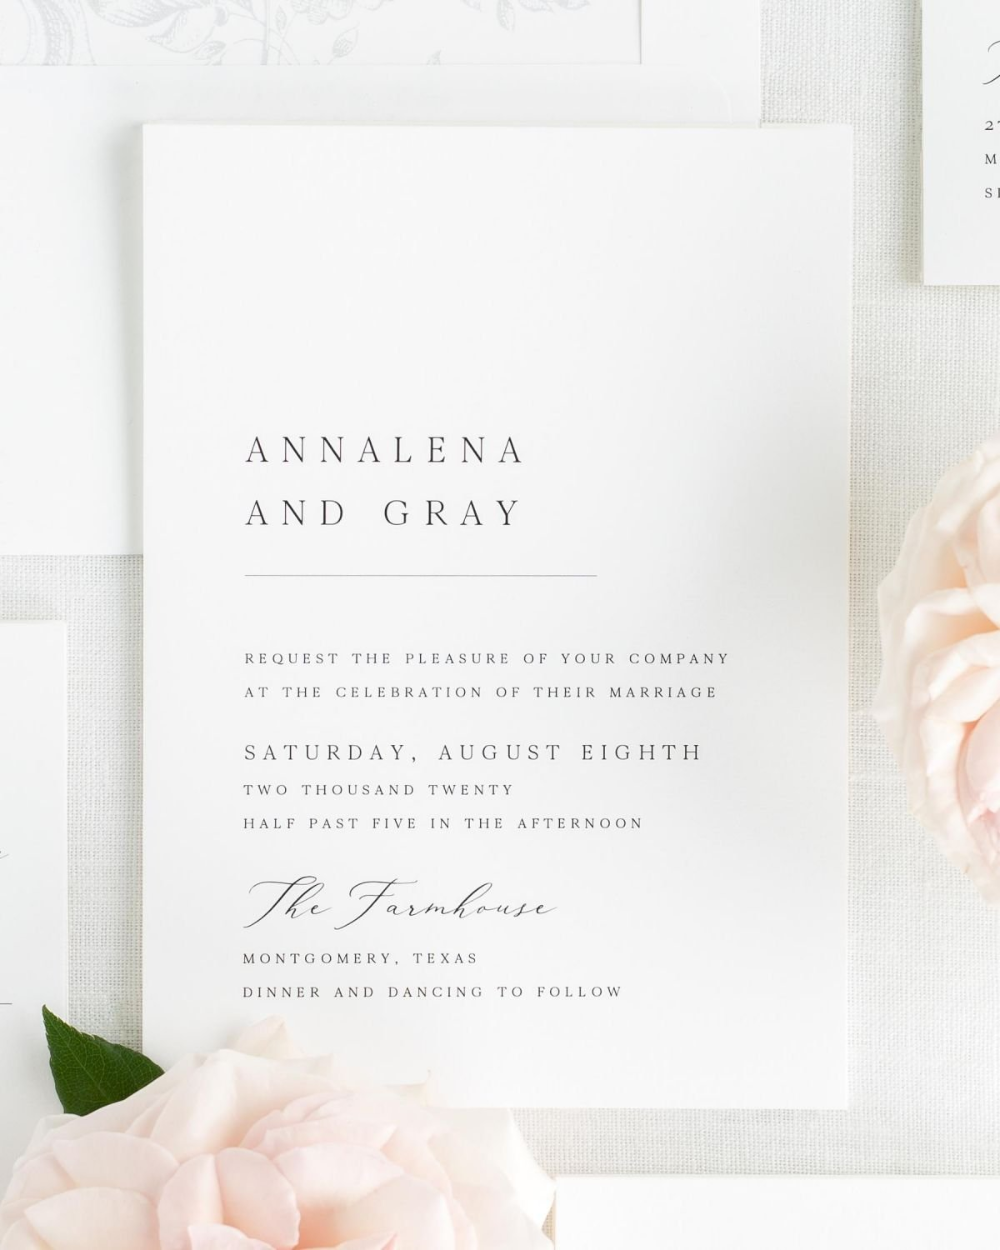 Annalena Wedding Invitations